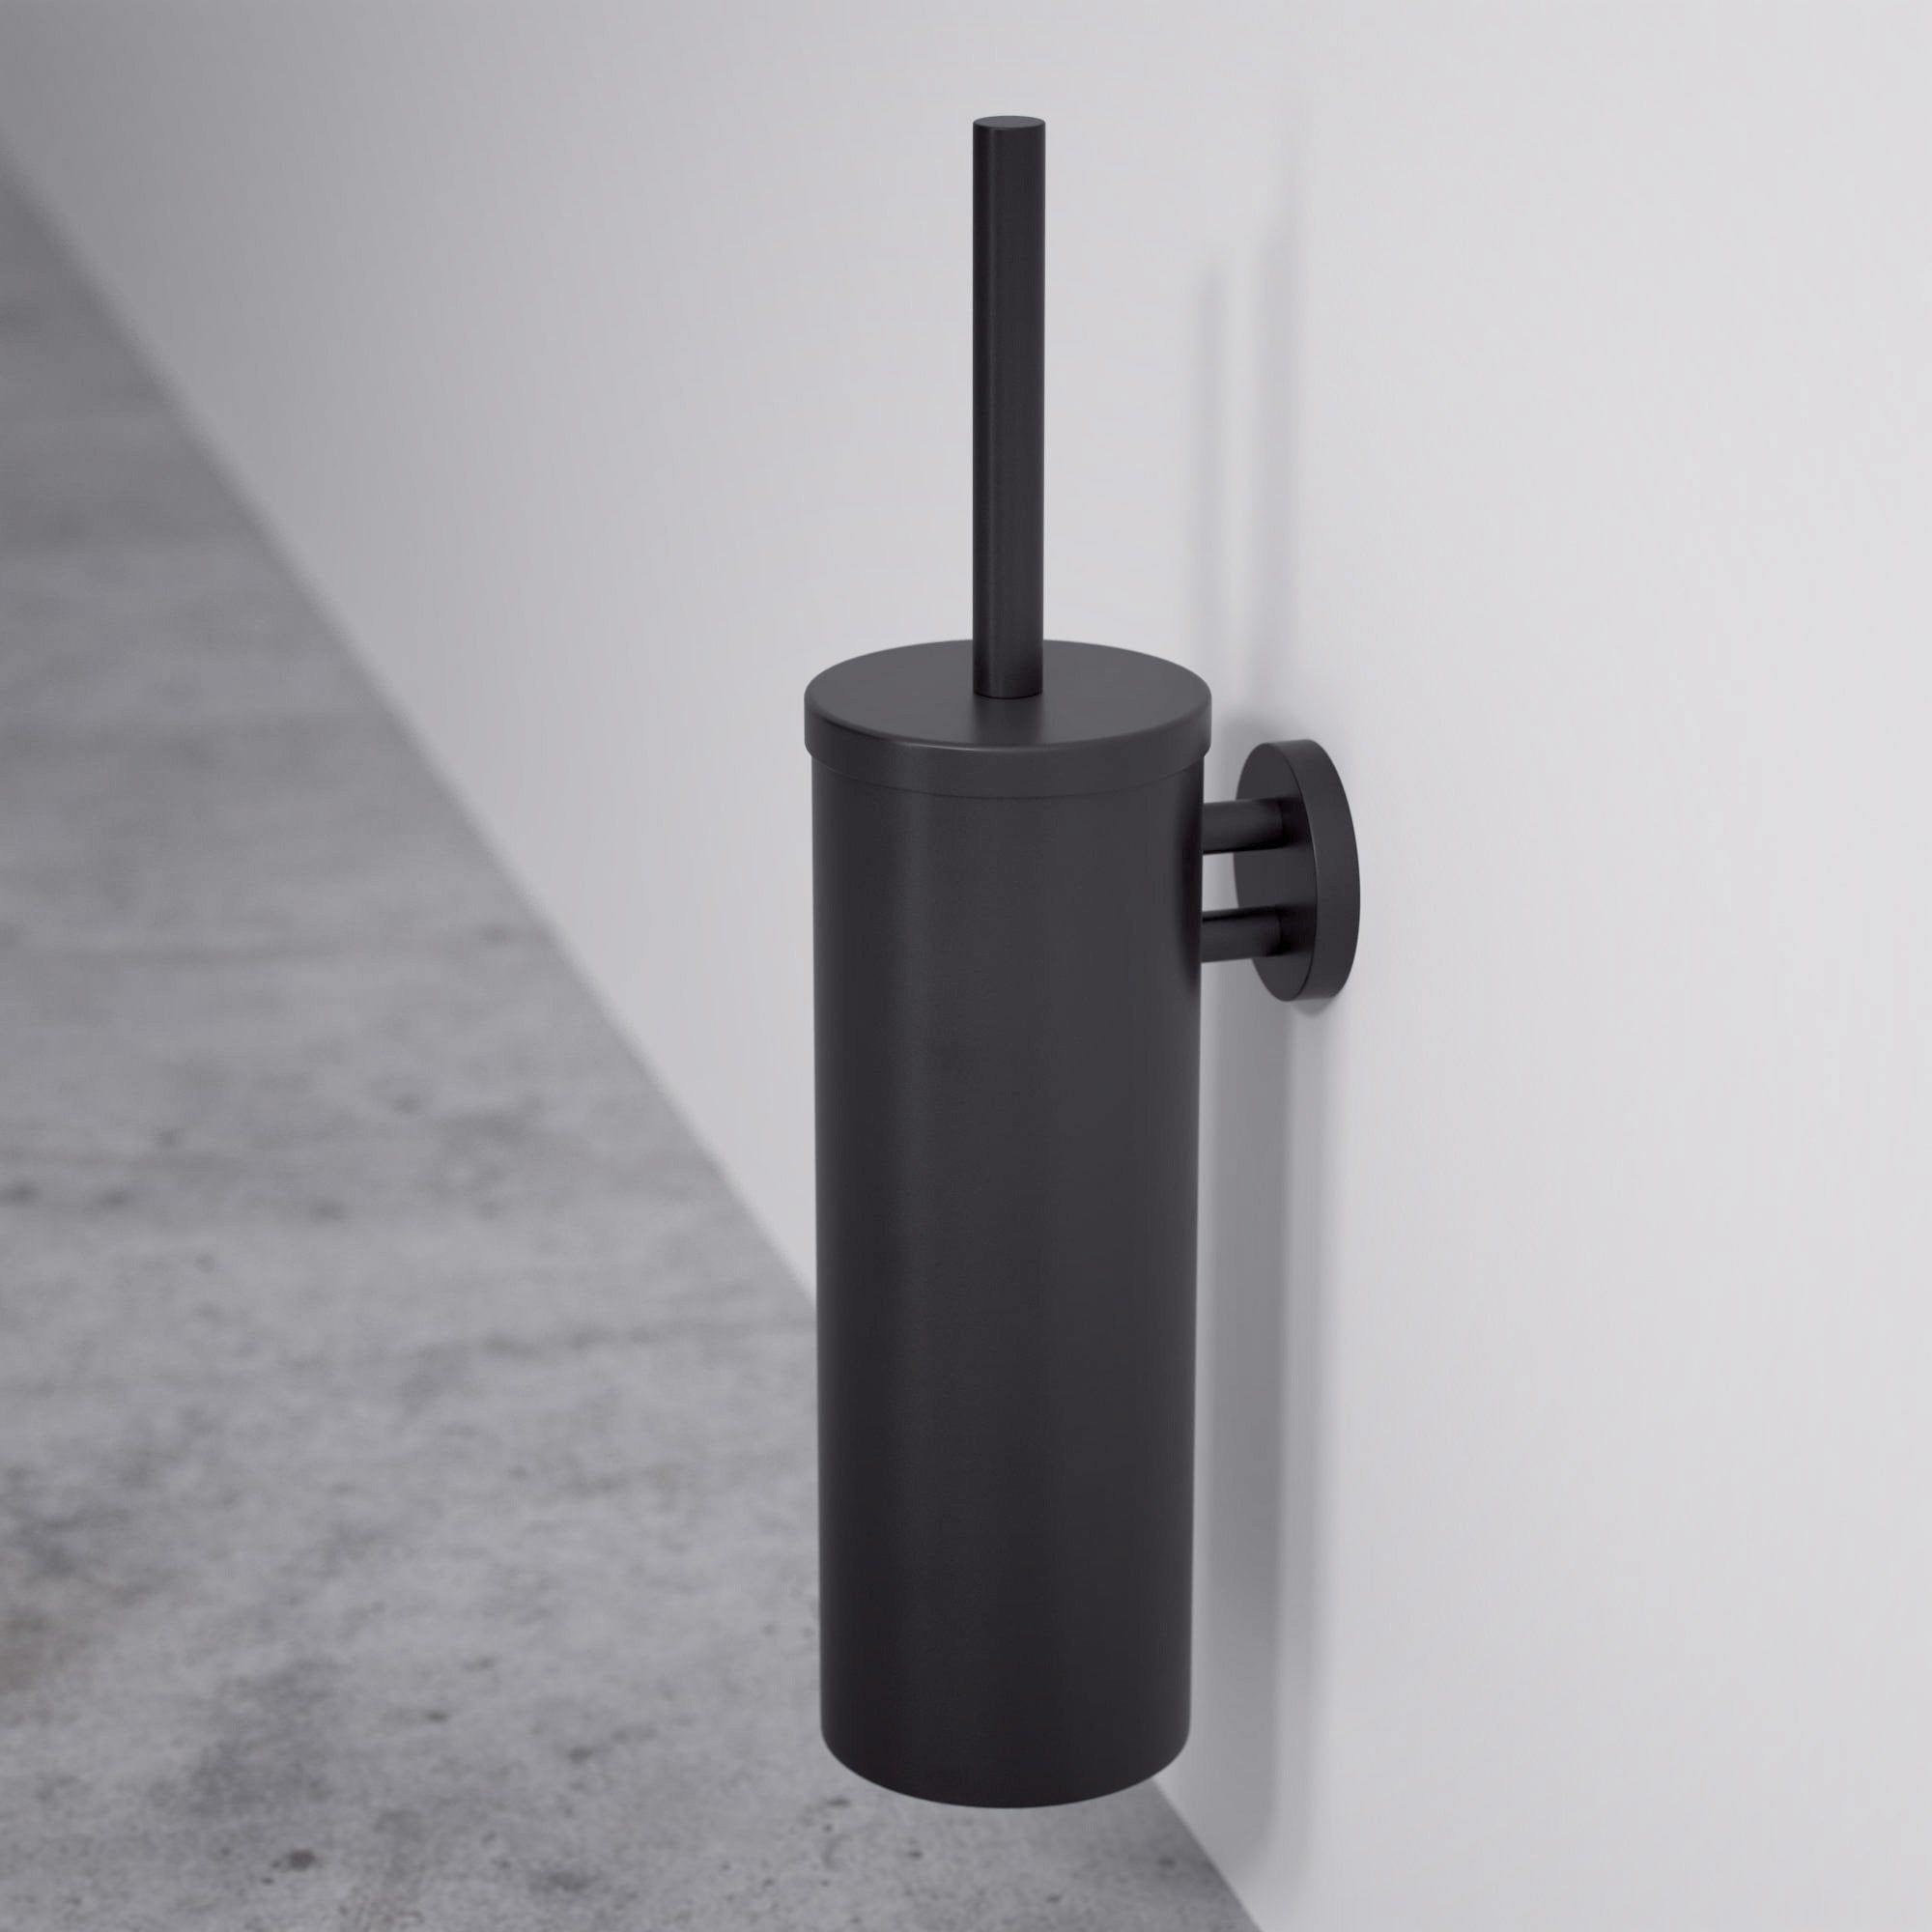 Lusso Luxe Wall Mounted Toilet Brush Holder Matte Black In 2020 Wall Mounted Toilet Toilet Brush Matte Black Bathroom Accessories